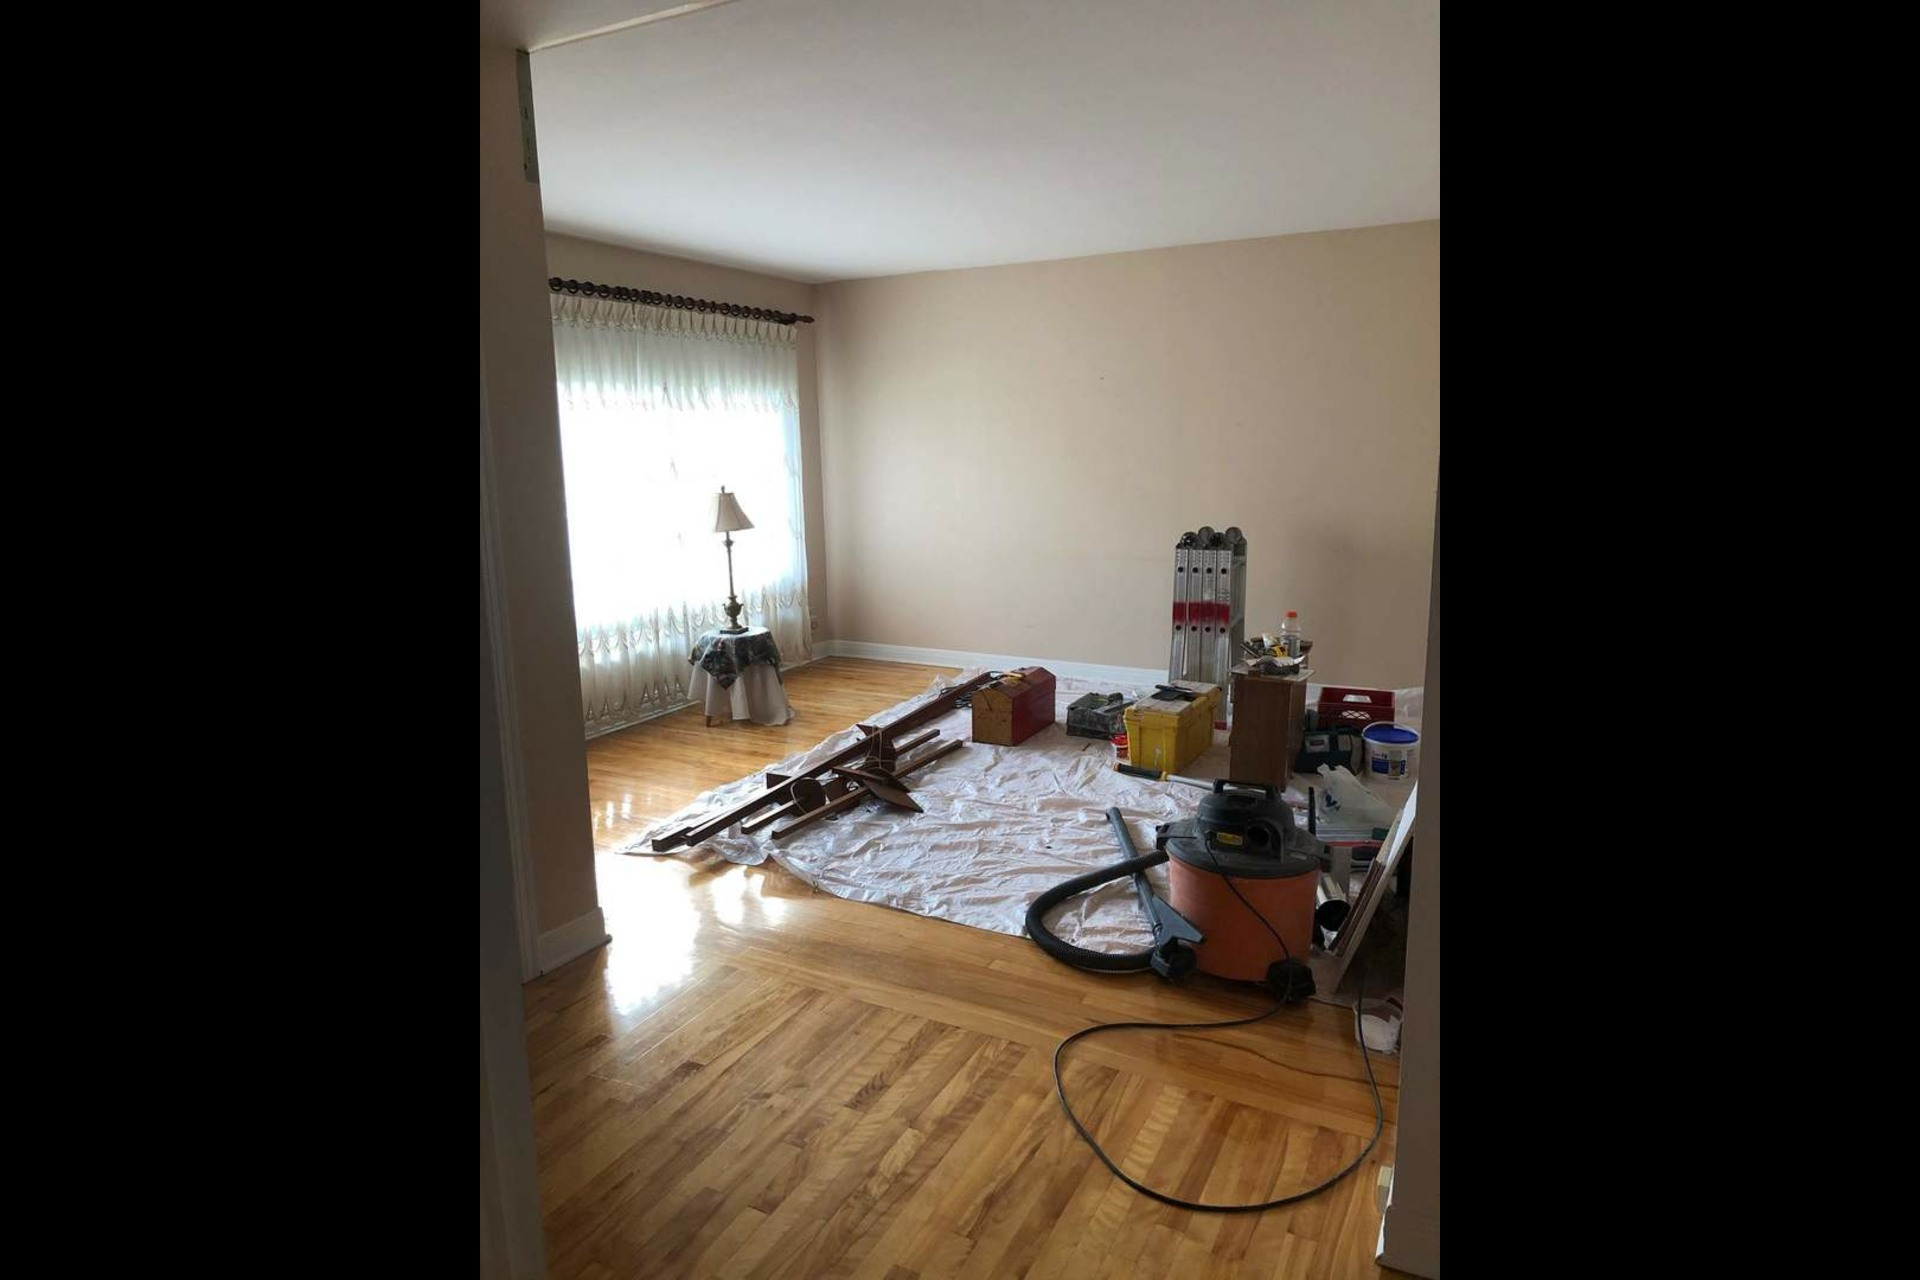 image 8 - House For rent Repentigny - 5 rooms